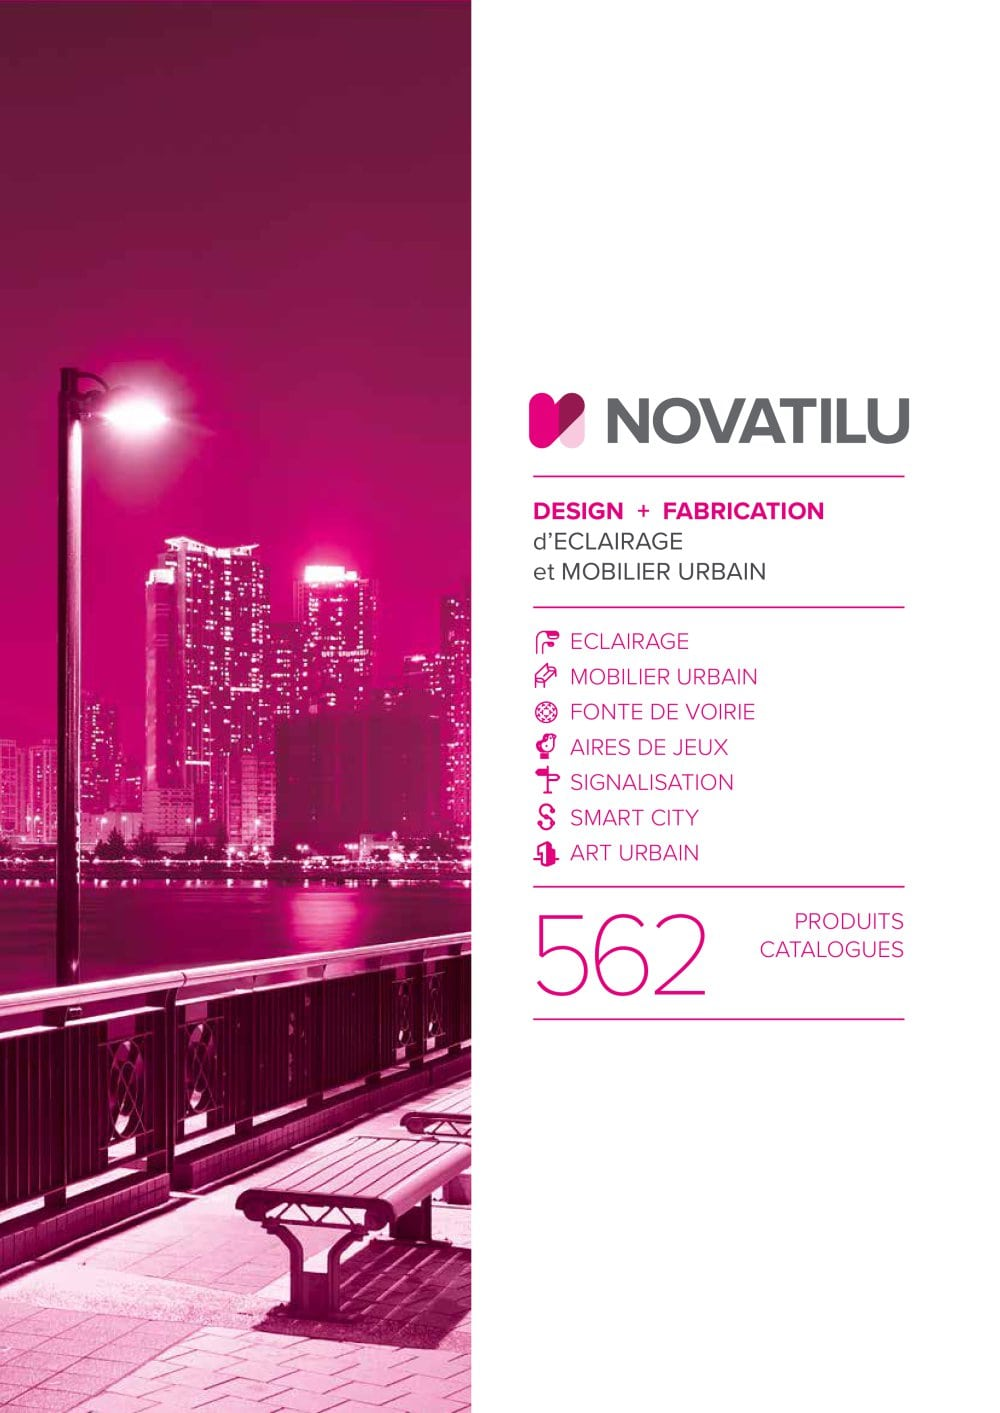 Lampadaire Exterieur Voirie Presentation Novatilu Novatilu Catalogue Pdf Documentation